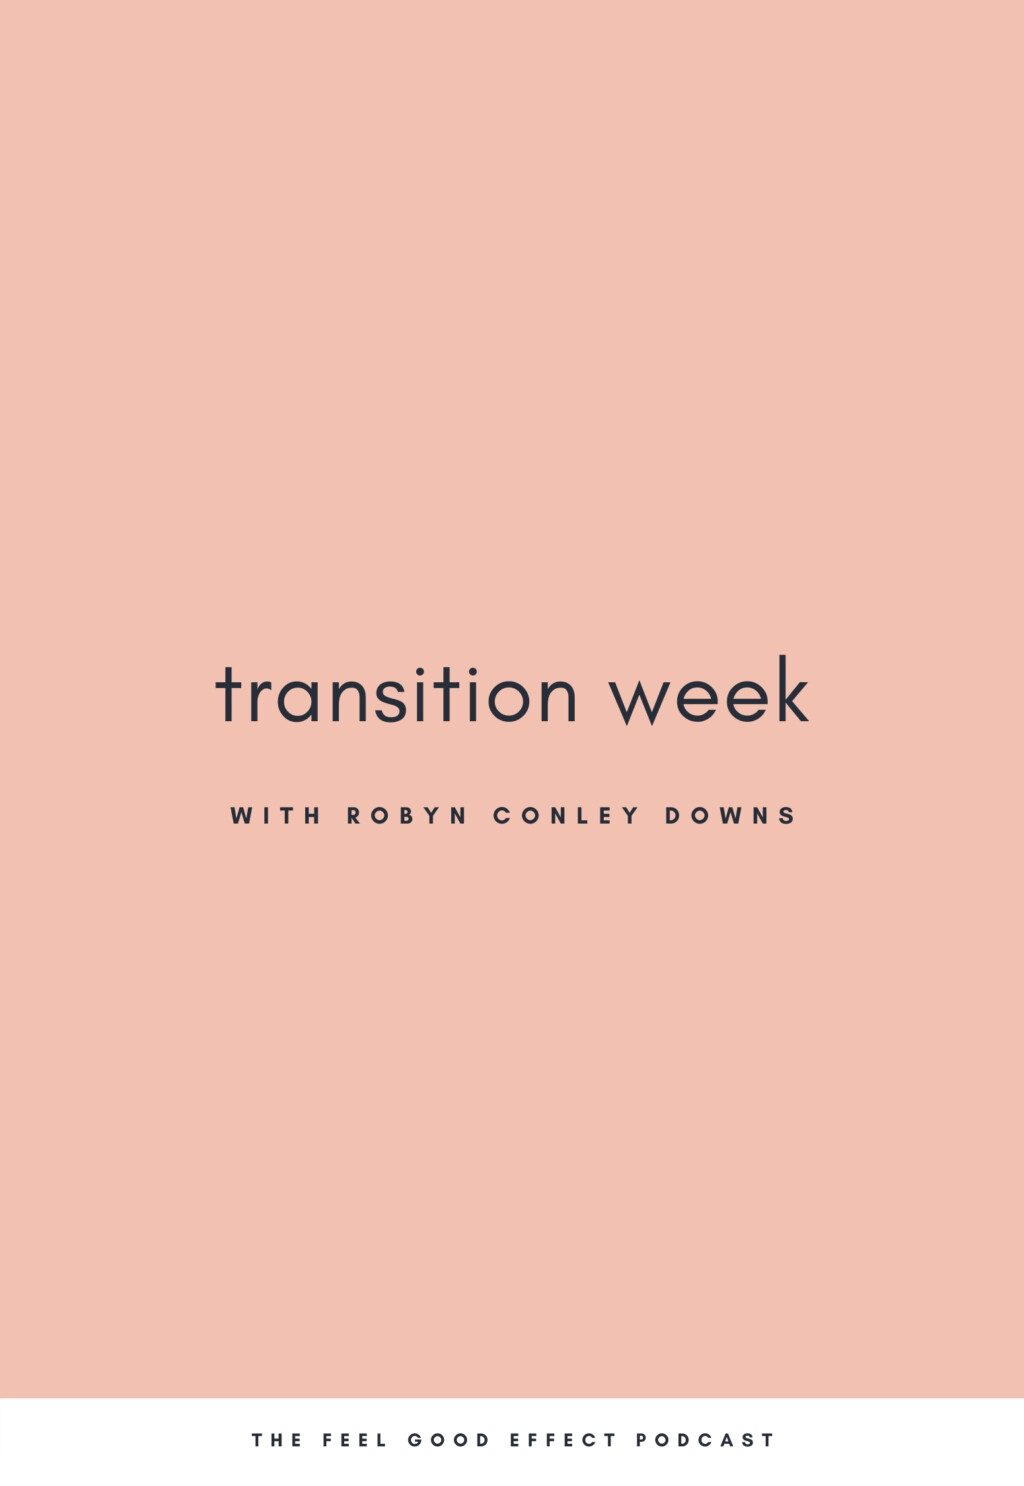 pink background with navy text that reads transition week with robyn conley downs